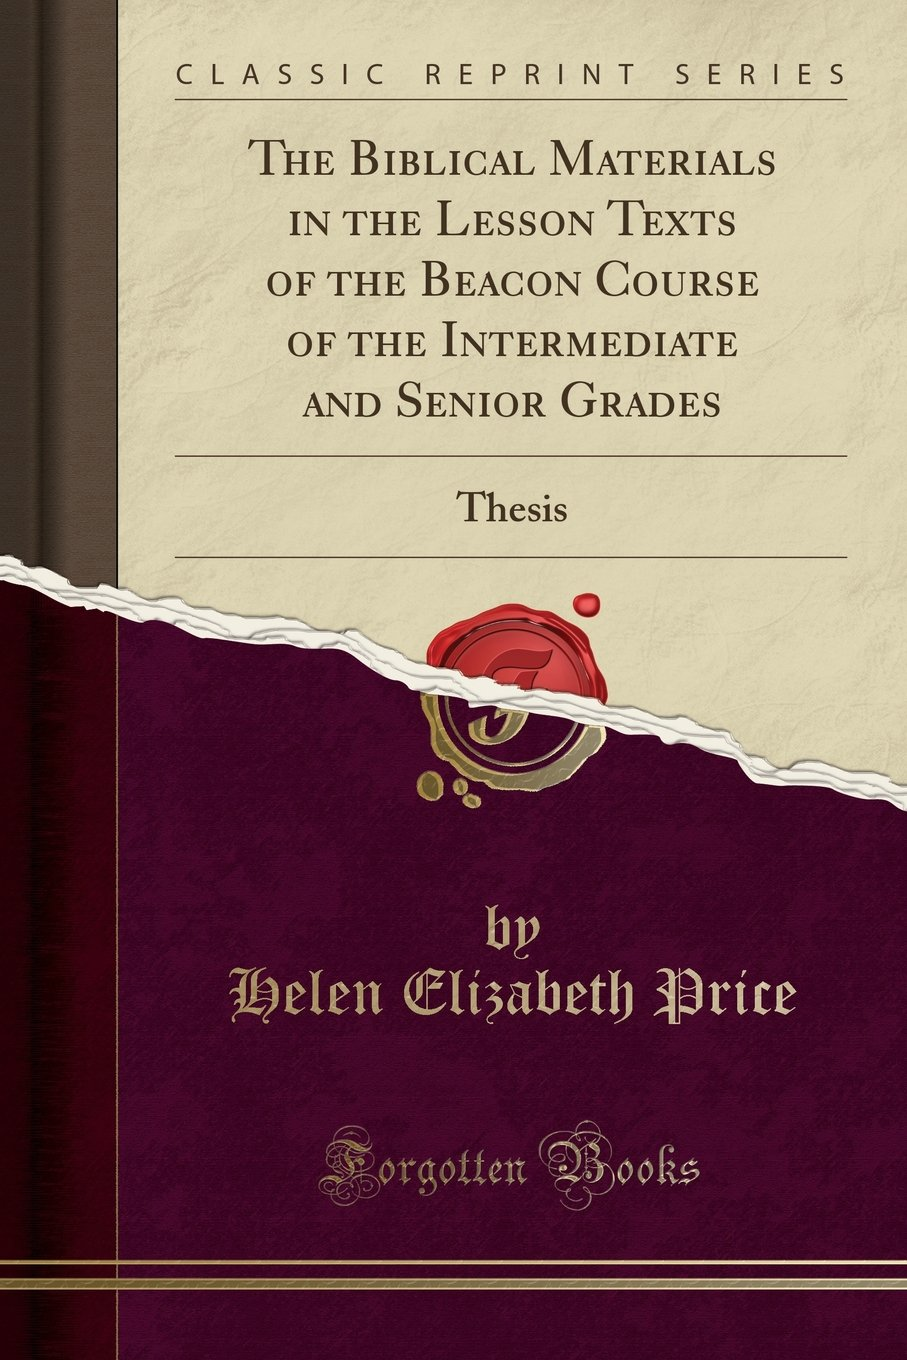 Download The Biblical Materials in the Lesson Texts of the Beacon Course of the Intermediate and Senior Grades: Thesis (Classic Reprint) PDF